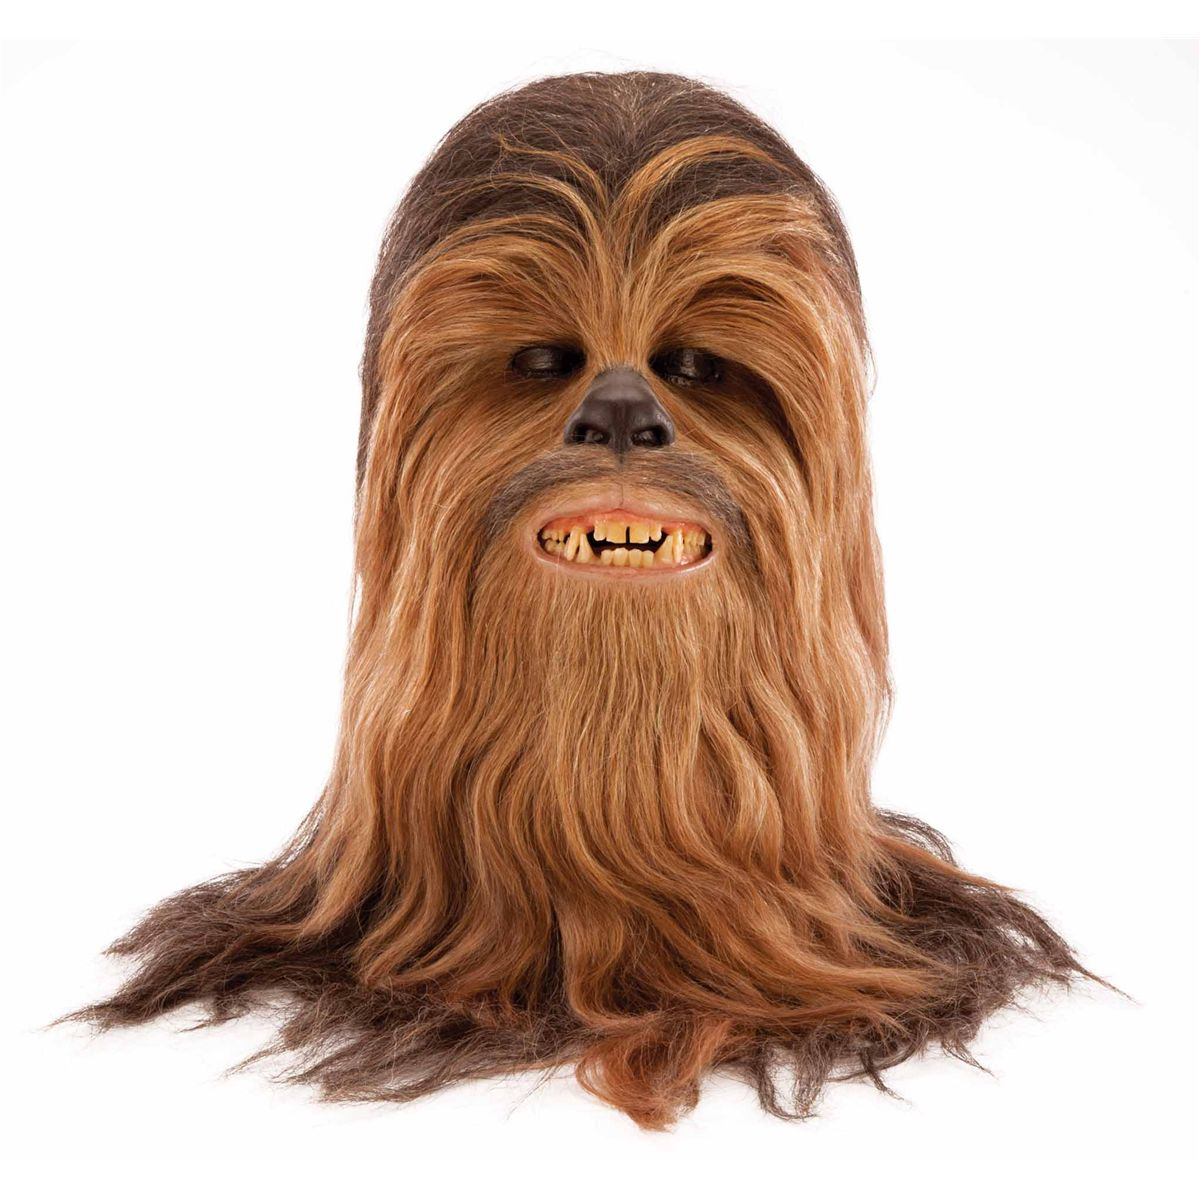 Chewbacca Head Outline Wiring Diagrams Transmission Diagram Parts List For Model La112 Maytagparts Washer Images Gallery